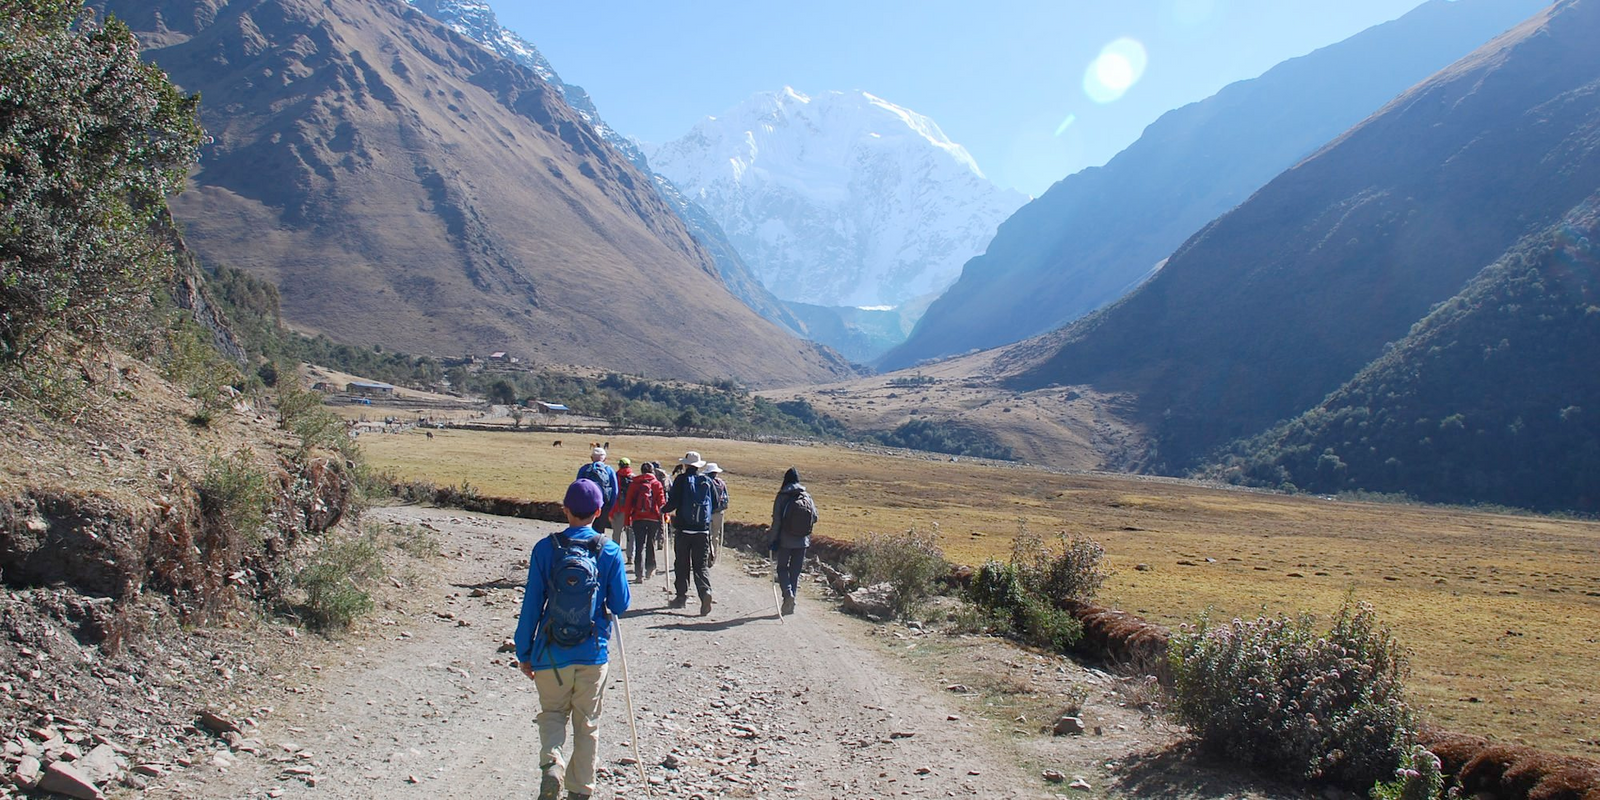 Glamping along the Inca Trail